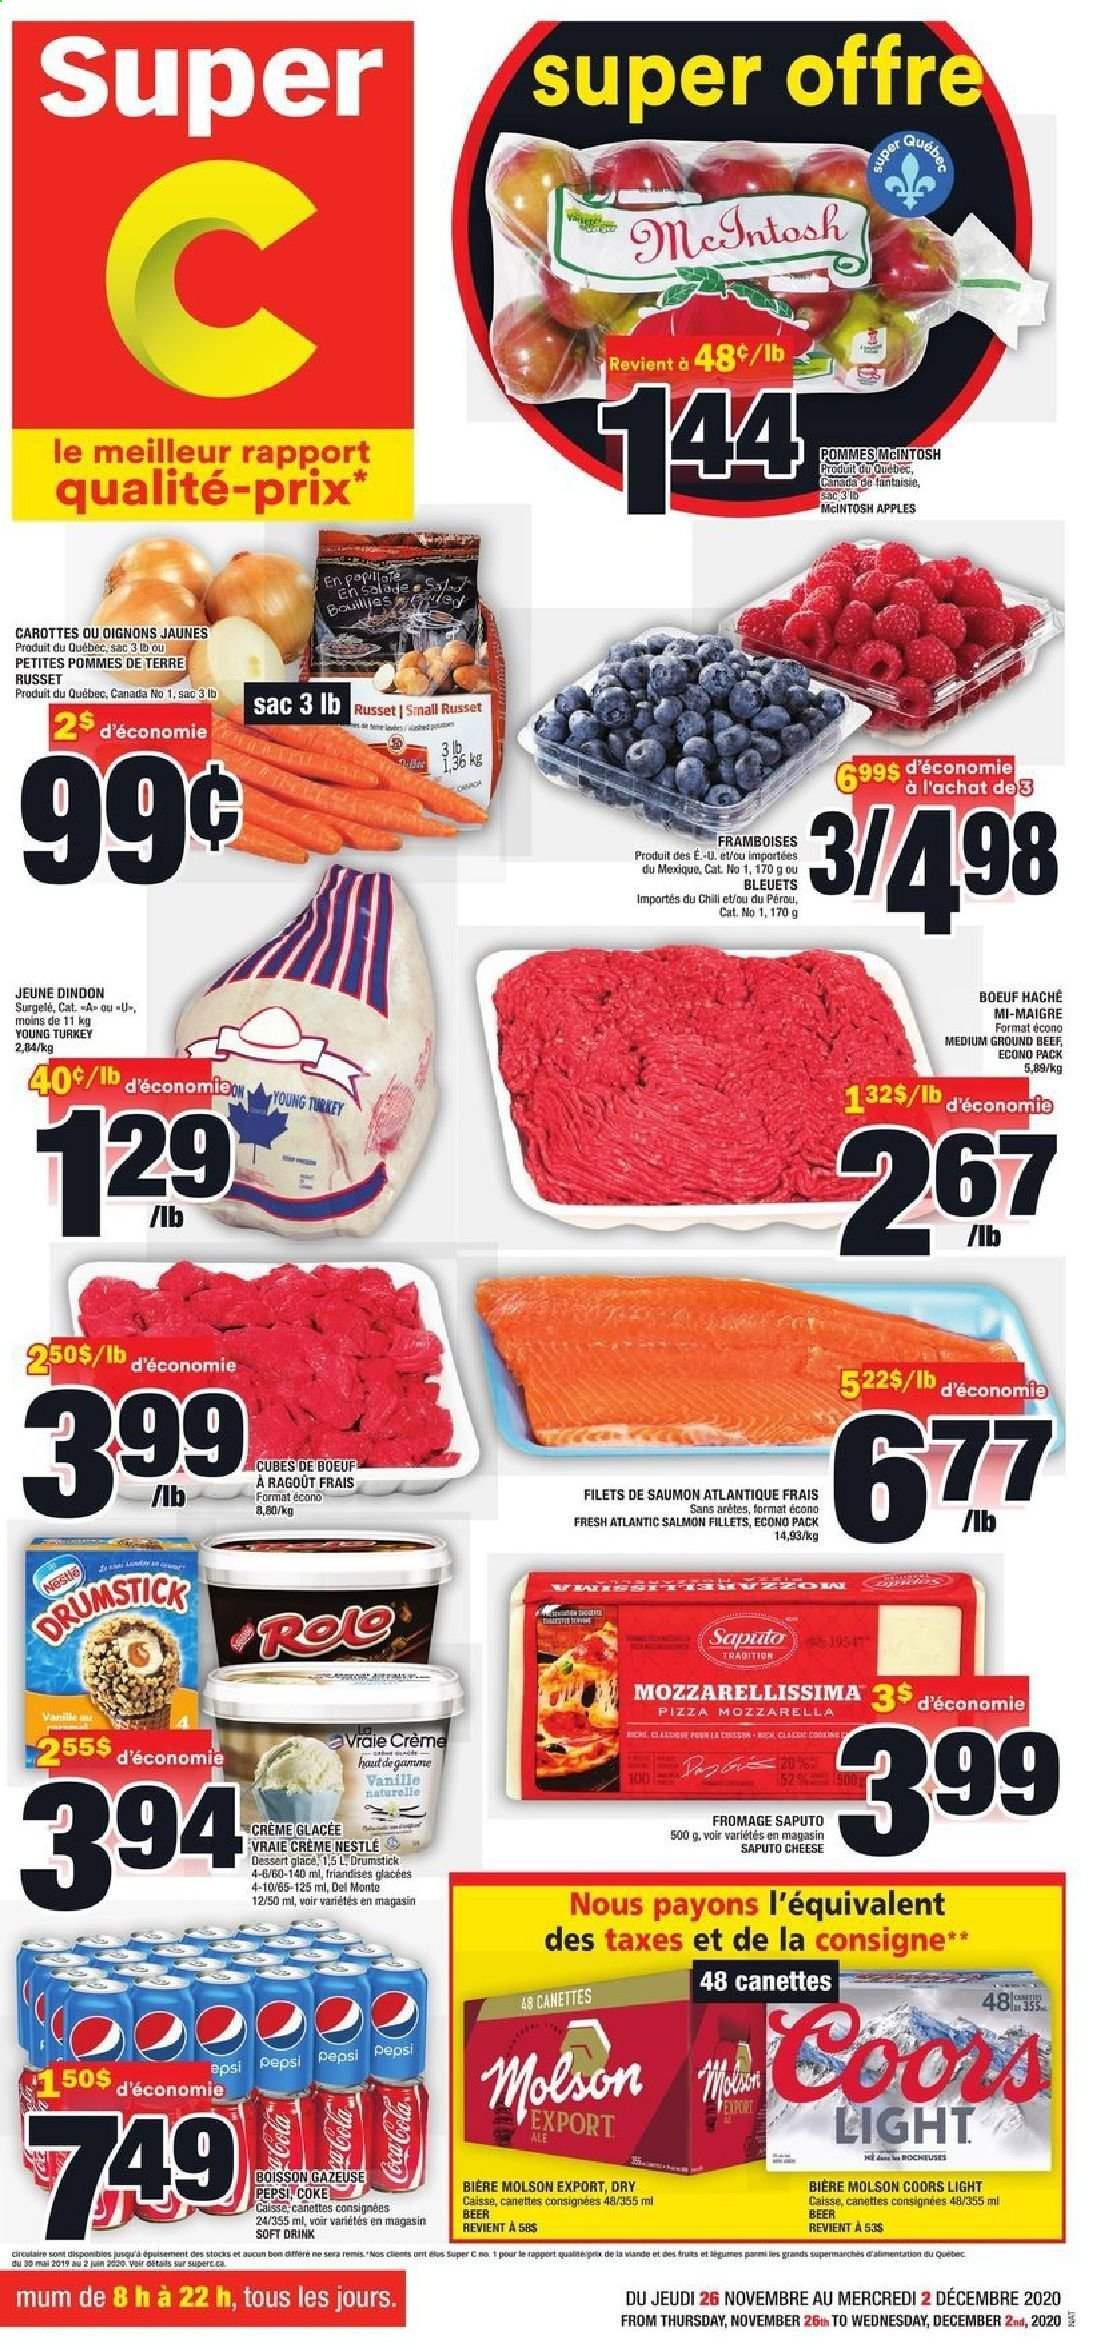 Super C Flyer - November 26, 2020 - December 02, 2020 - Sales products - apples, beef meat, Beer, coca-cola, ground beef, mozzarella, Nestlé, salmon, turkey, pizza, Pepsi, cheese, Apple, Coors, soft drink. Page 1.